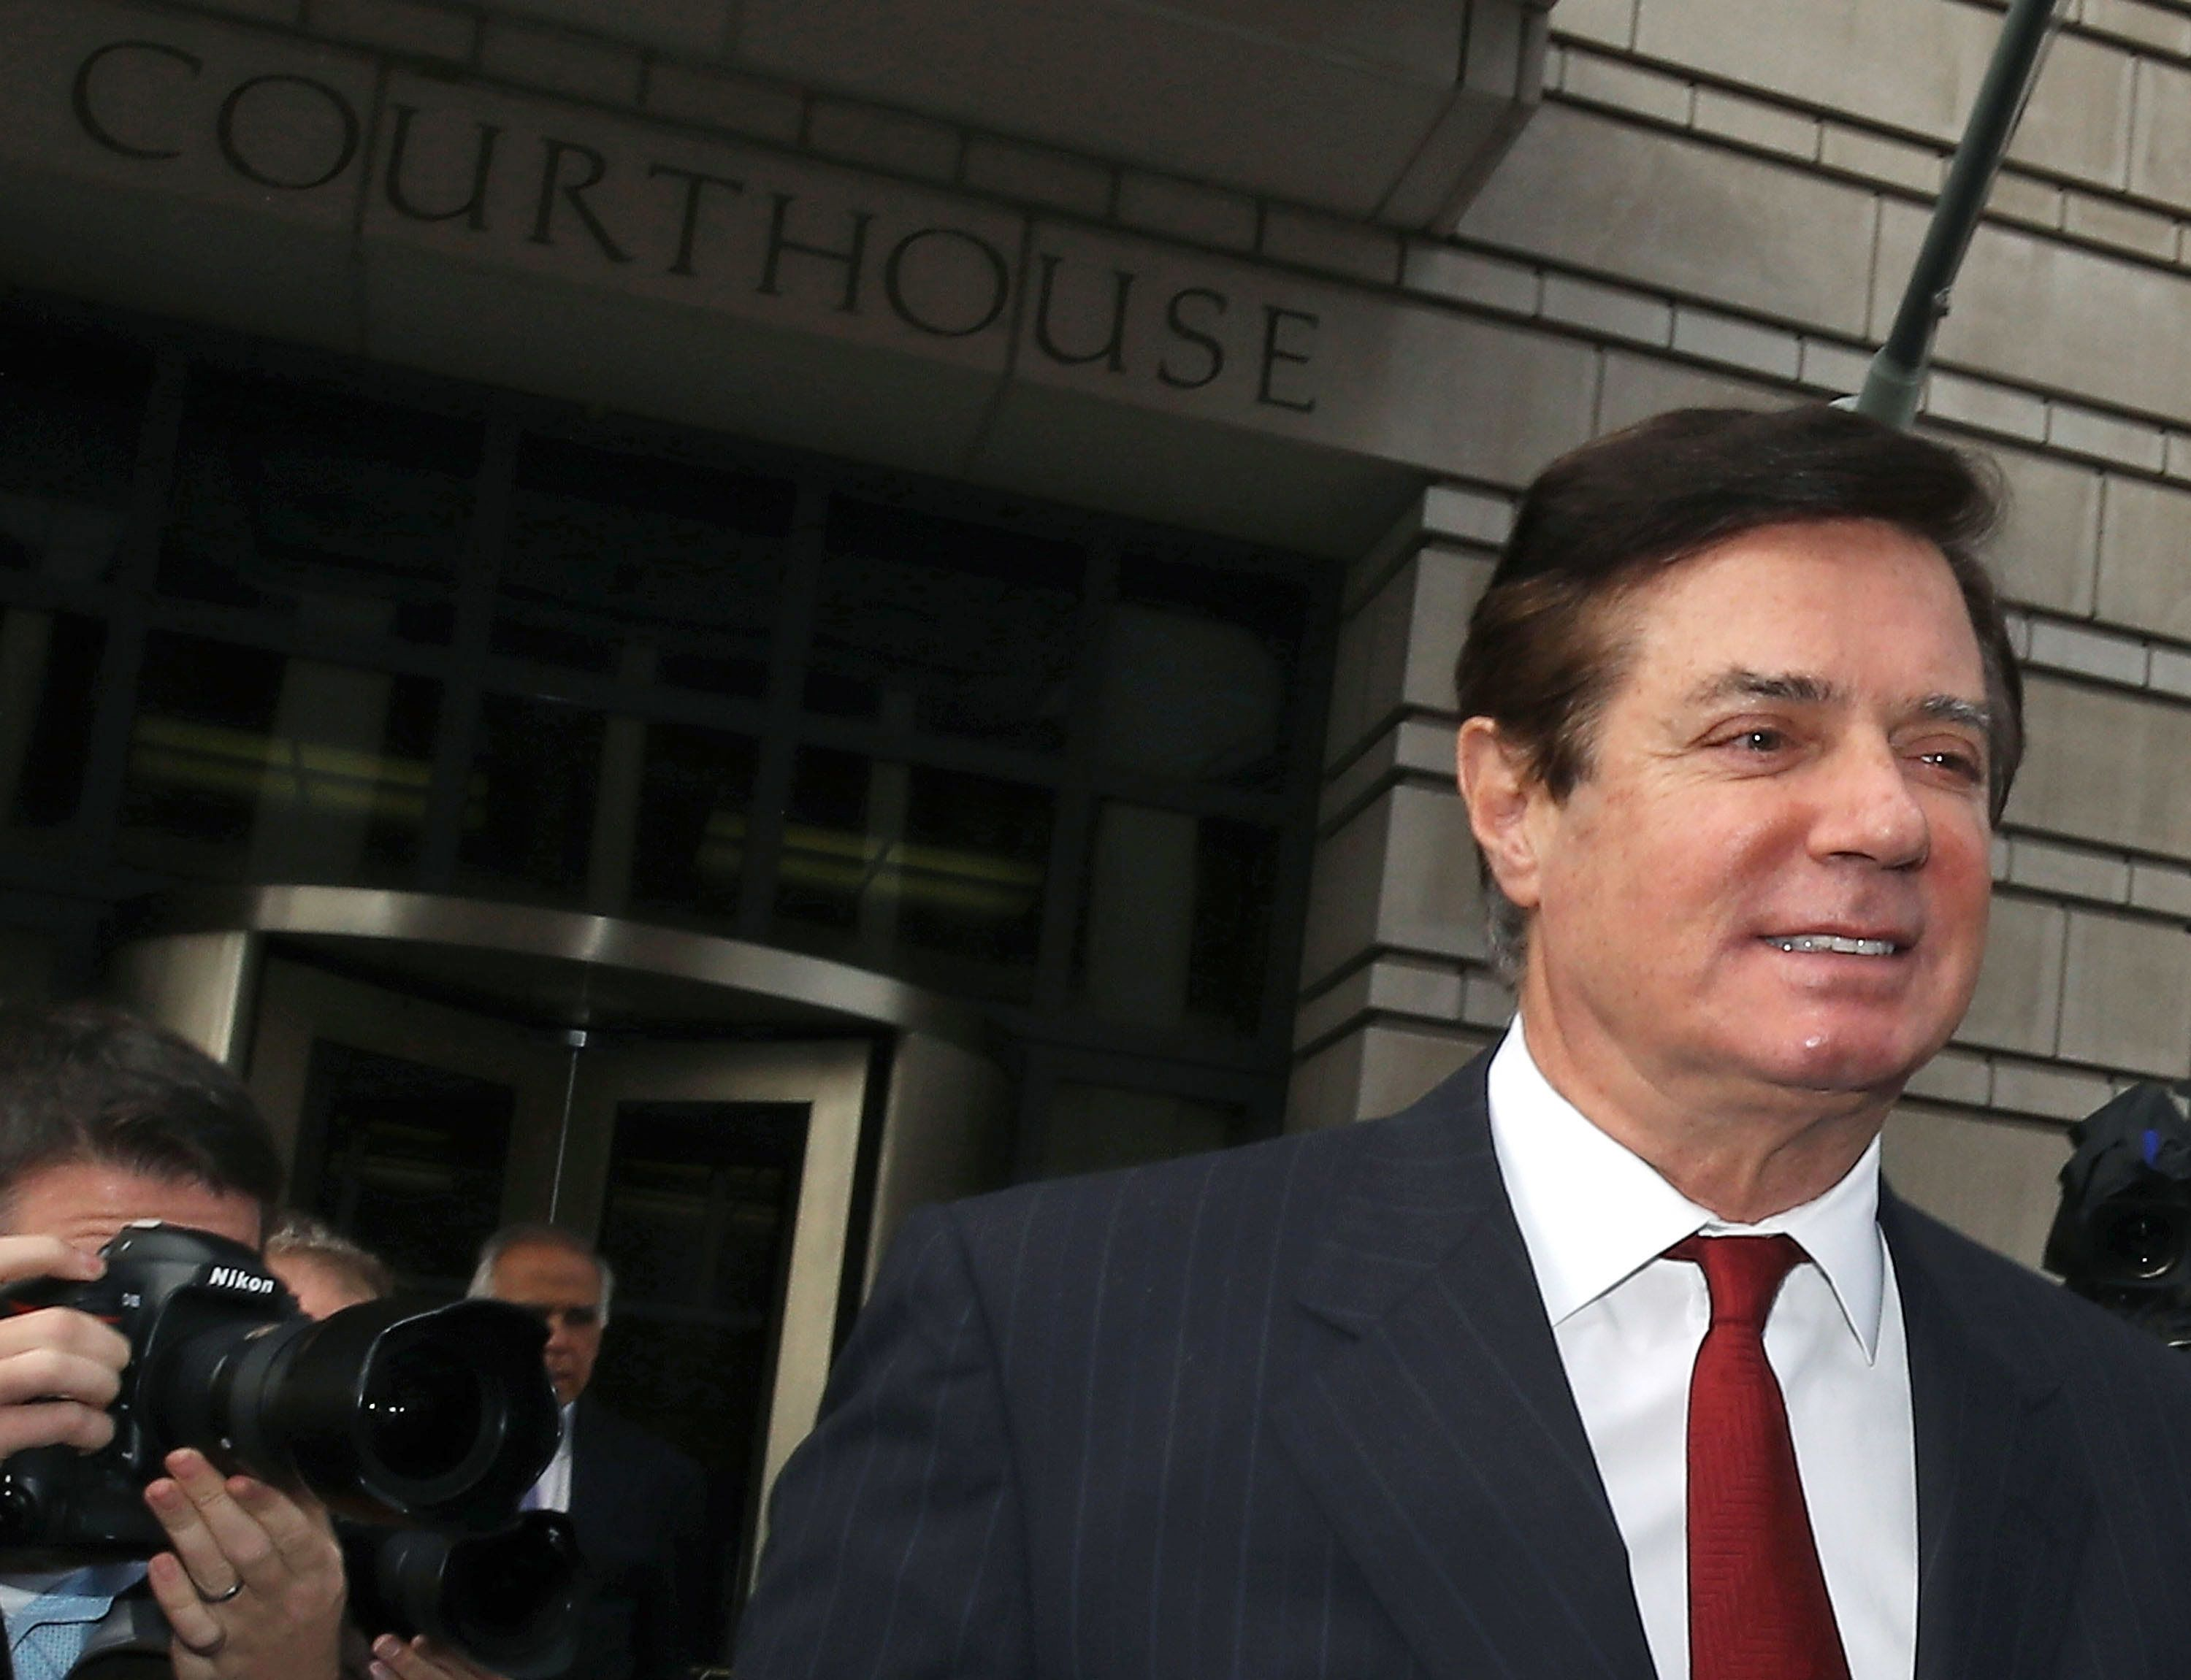 Attorney: Paul Manafort did not violate court order by editing op-ed